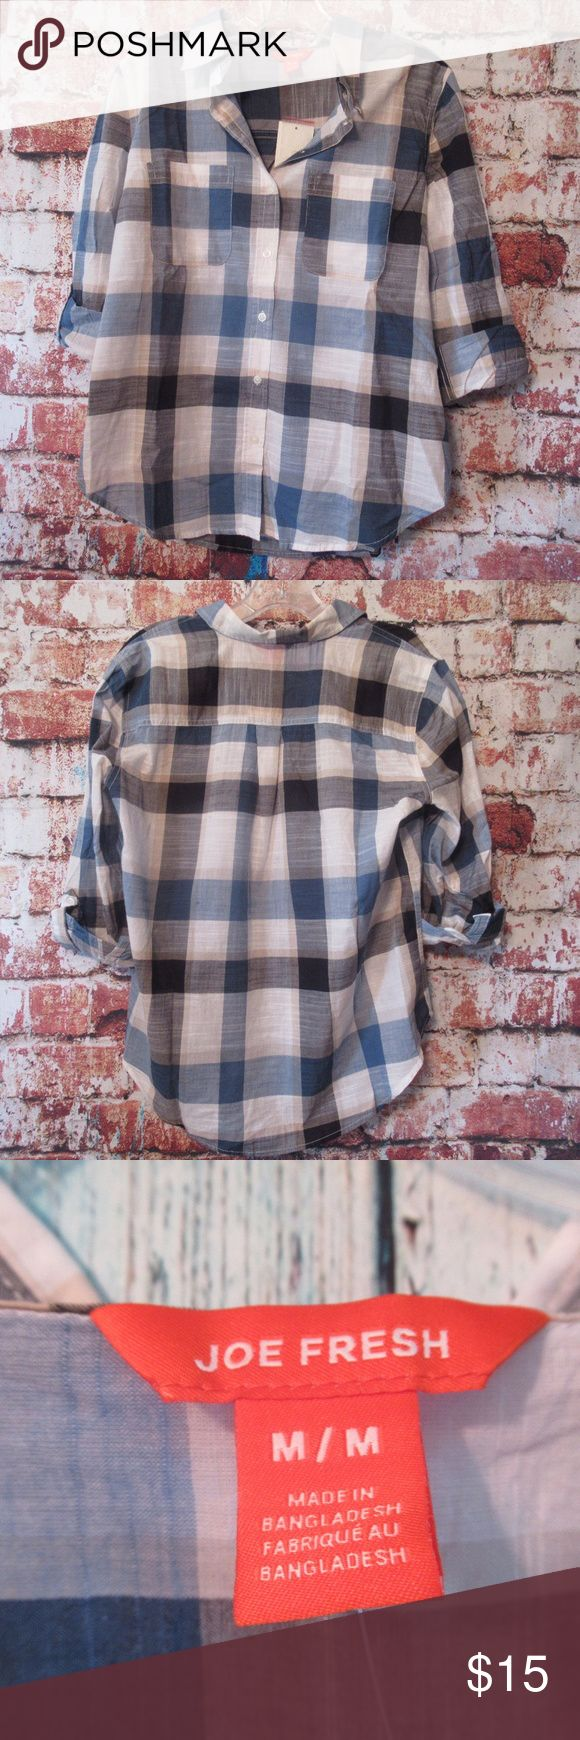 """Joe Fresh Cotton Button Up Blouse T290104 NWT - Joe Fresh blue/white plaid roll sleeve blouse. Button up with two front chest pockets. 100% Cotton.  Approx Measurements:  Chest: 20"""" Length: 26""""  Thanks! Joe Fresh Tops Button Down Shirts"""